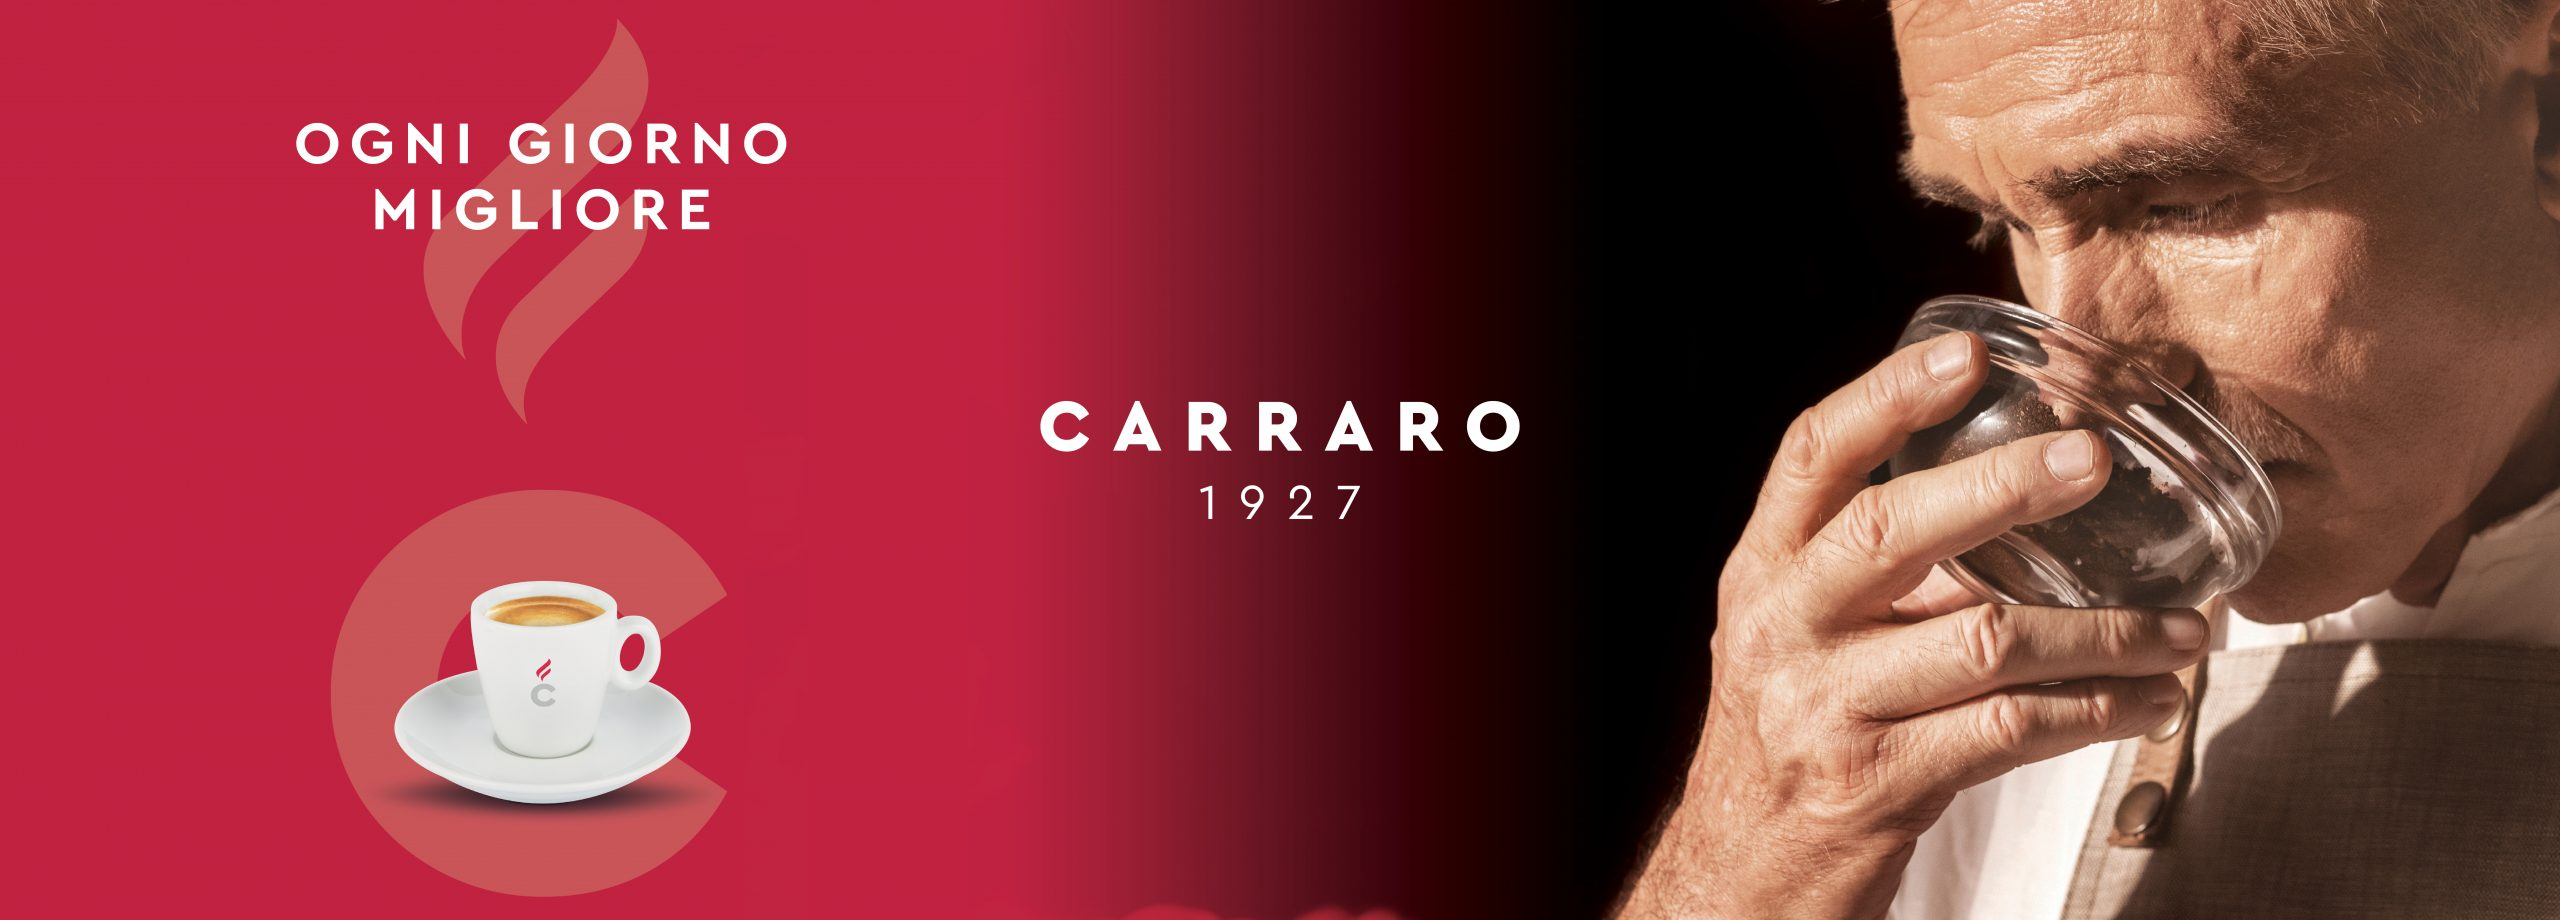 """Caffè Carraro - The campaign project """"Better every day"""" stems from the need of the company to present itself in a new way to the market."""